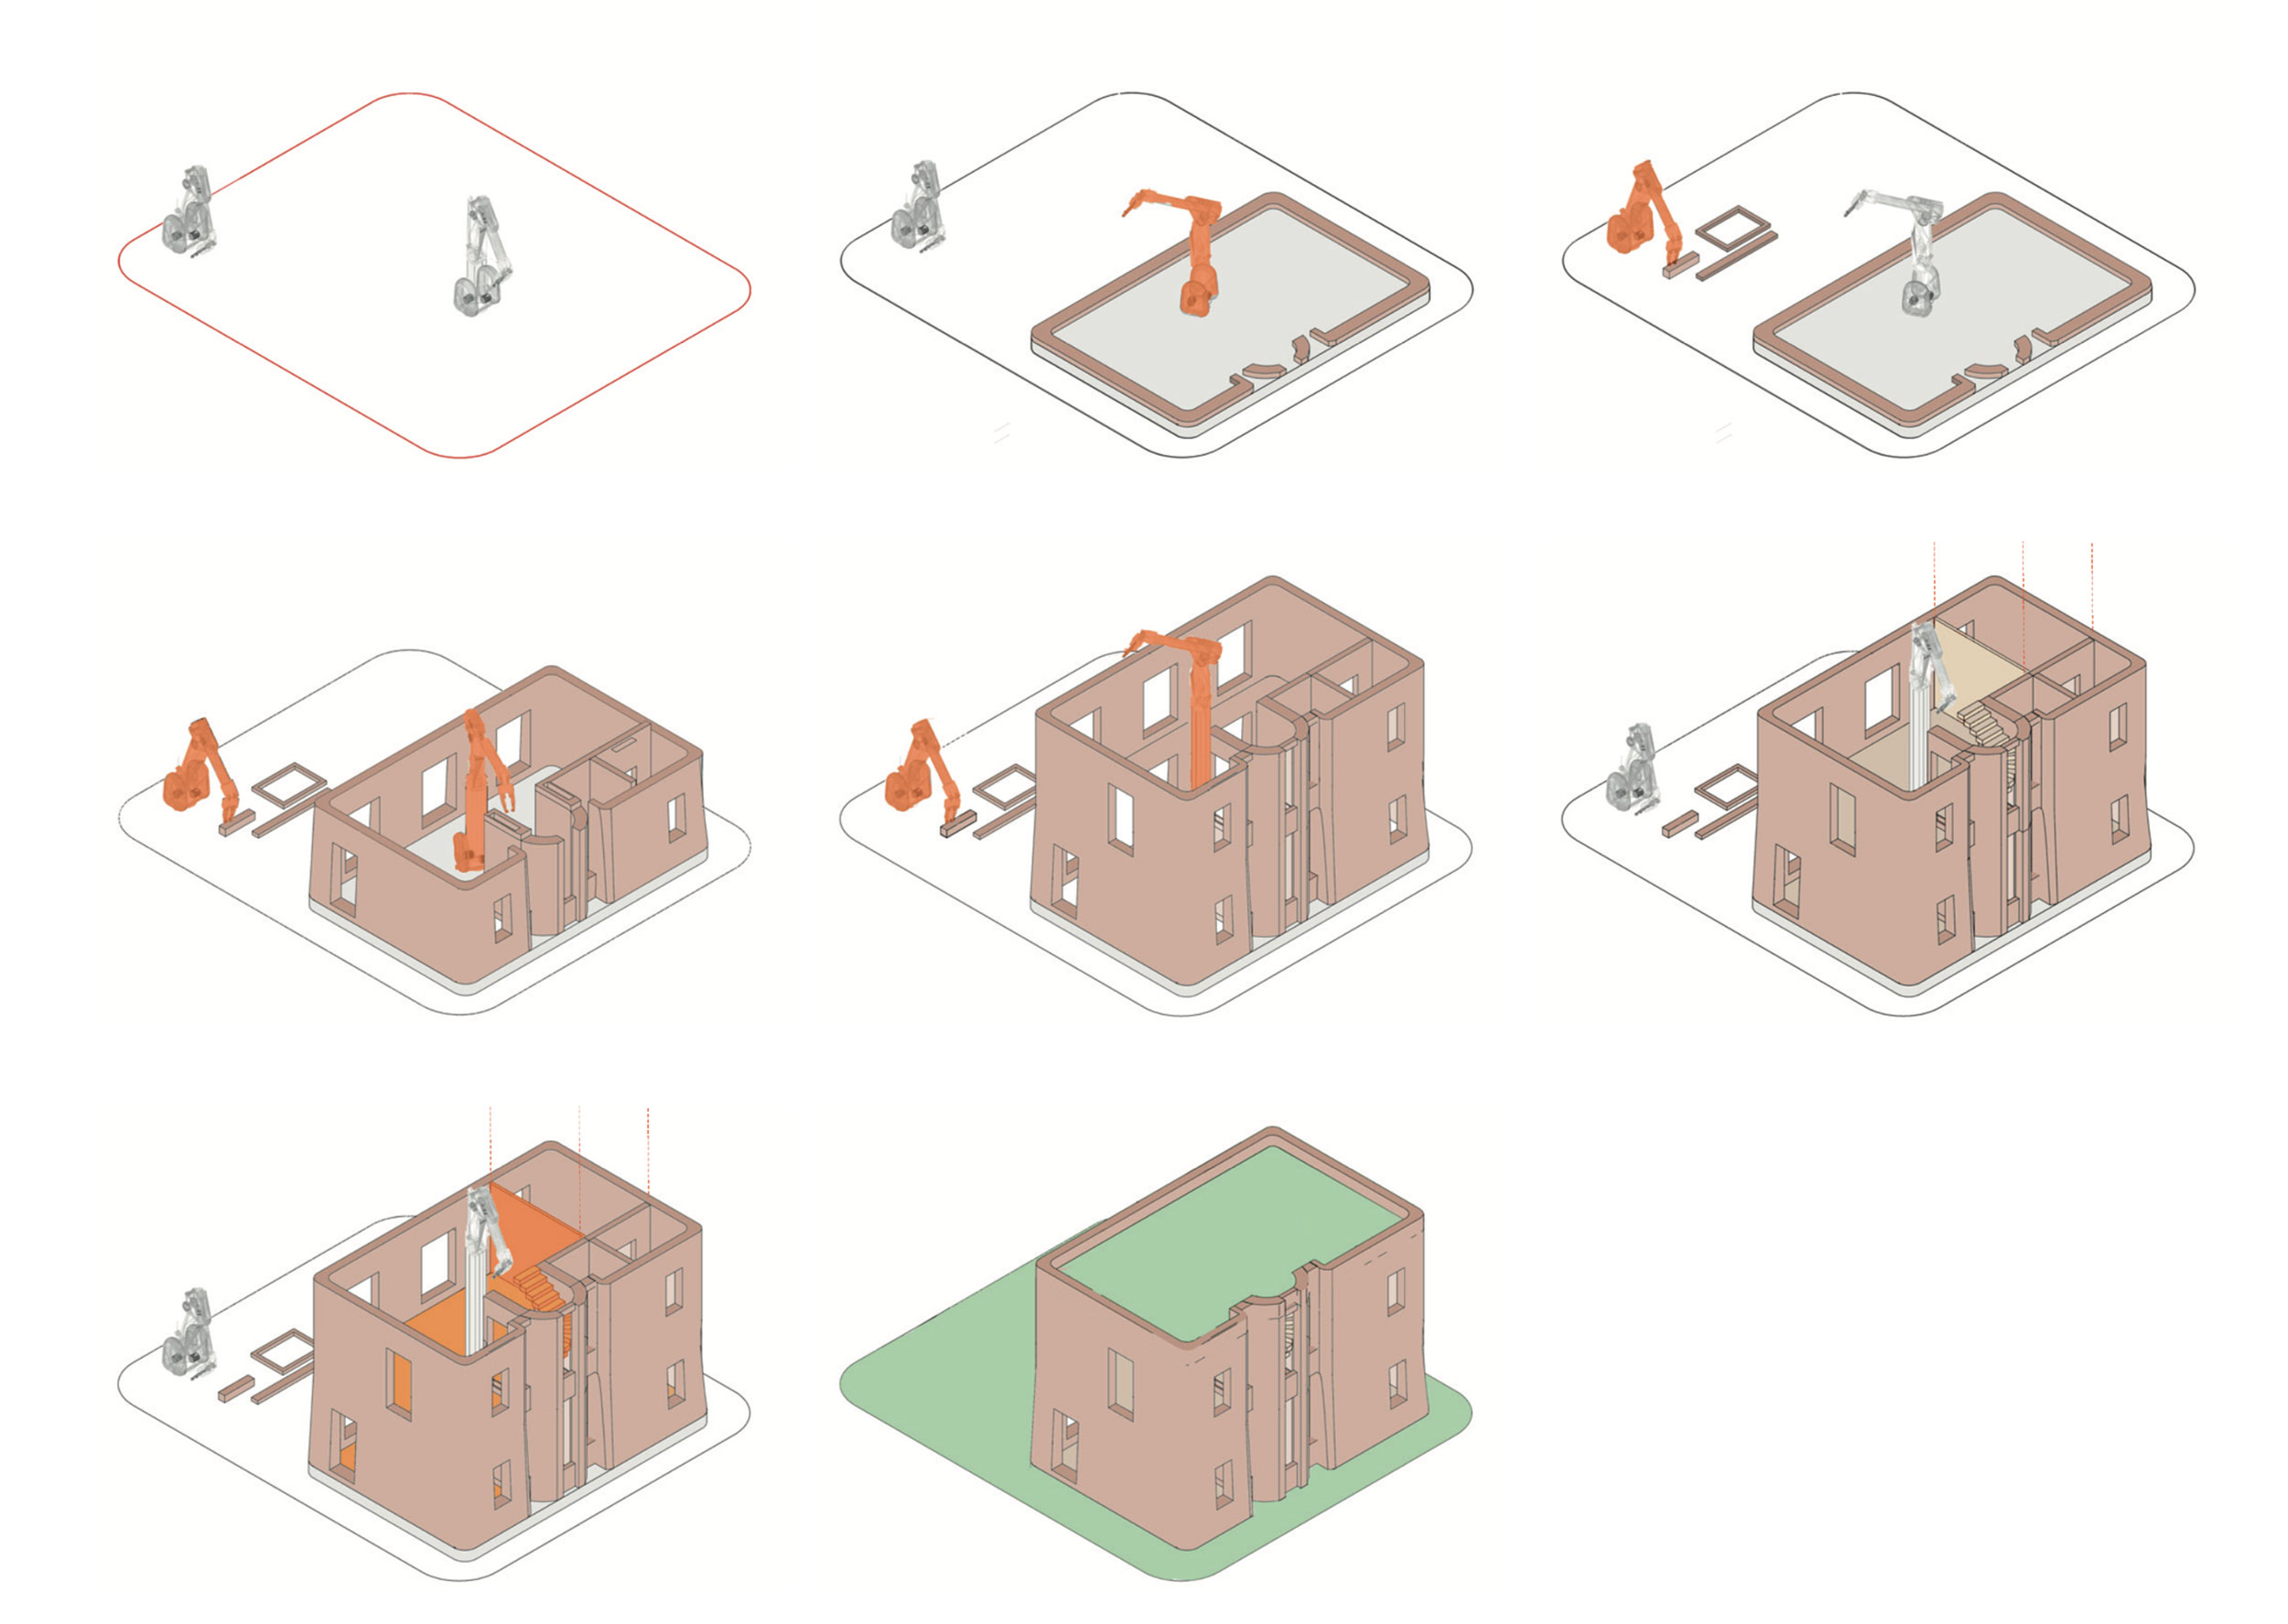 Diagrams showing the construction process using 3D printing construction technologies with CAD manufactured timber floors and walls.